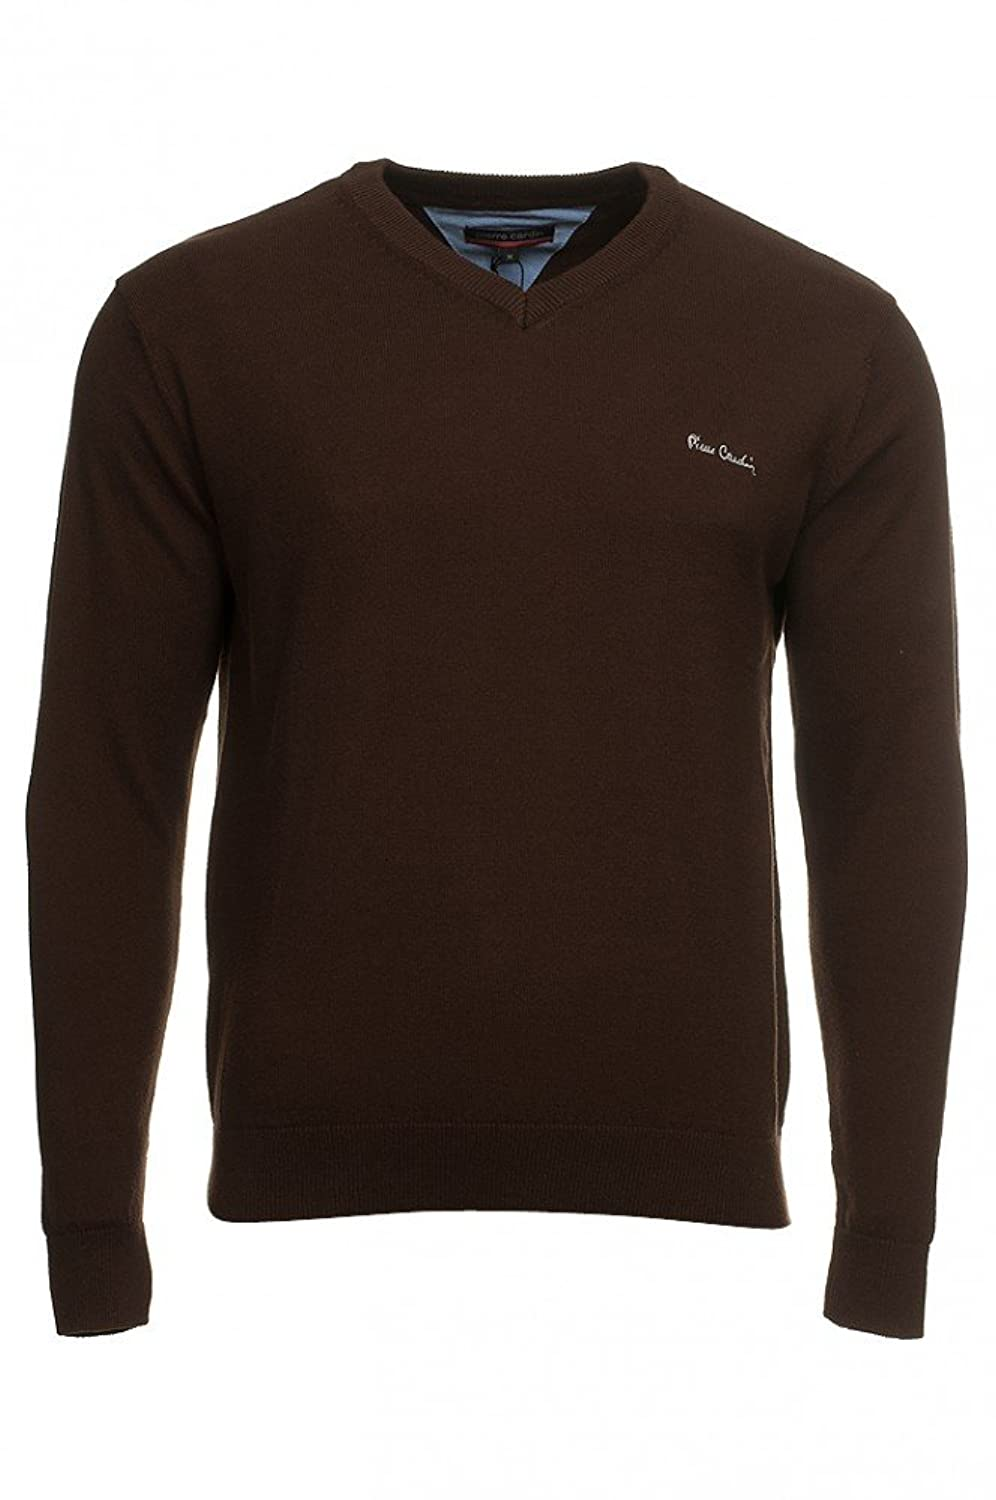 Pierre Cardin Men's Jumper Brown Brown